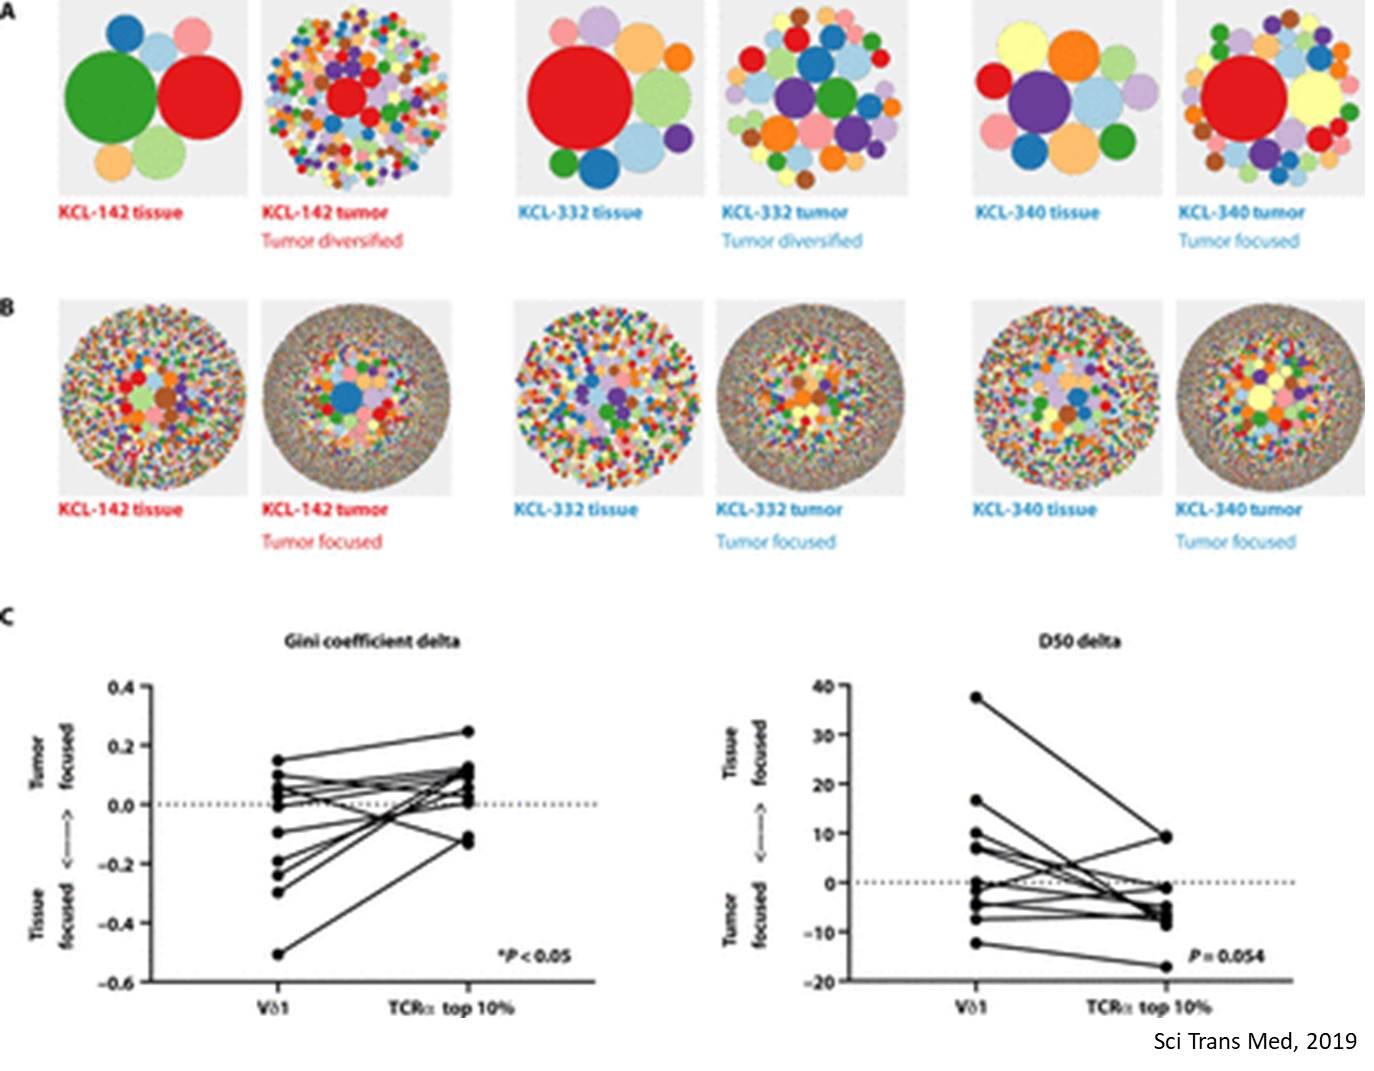 Predicting chemotherapy response using patient-derived organoids